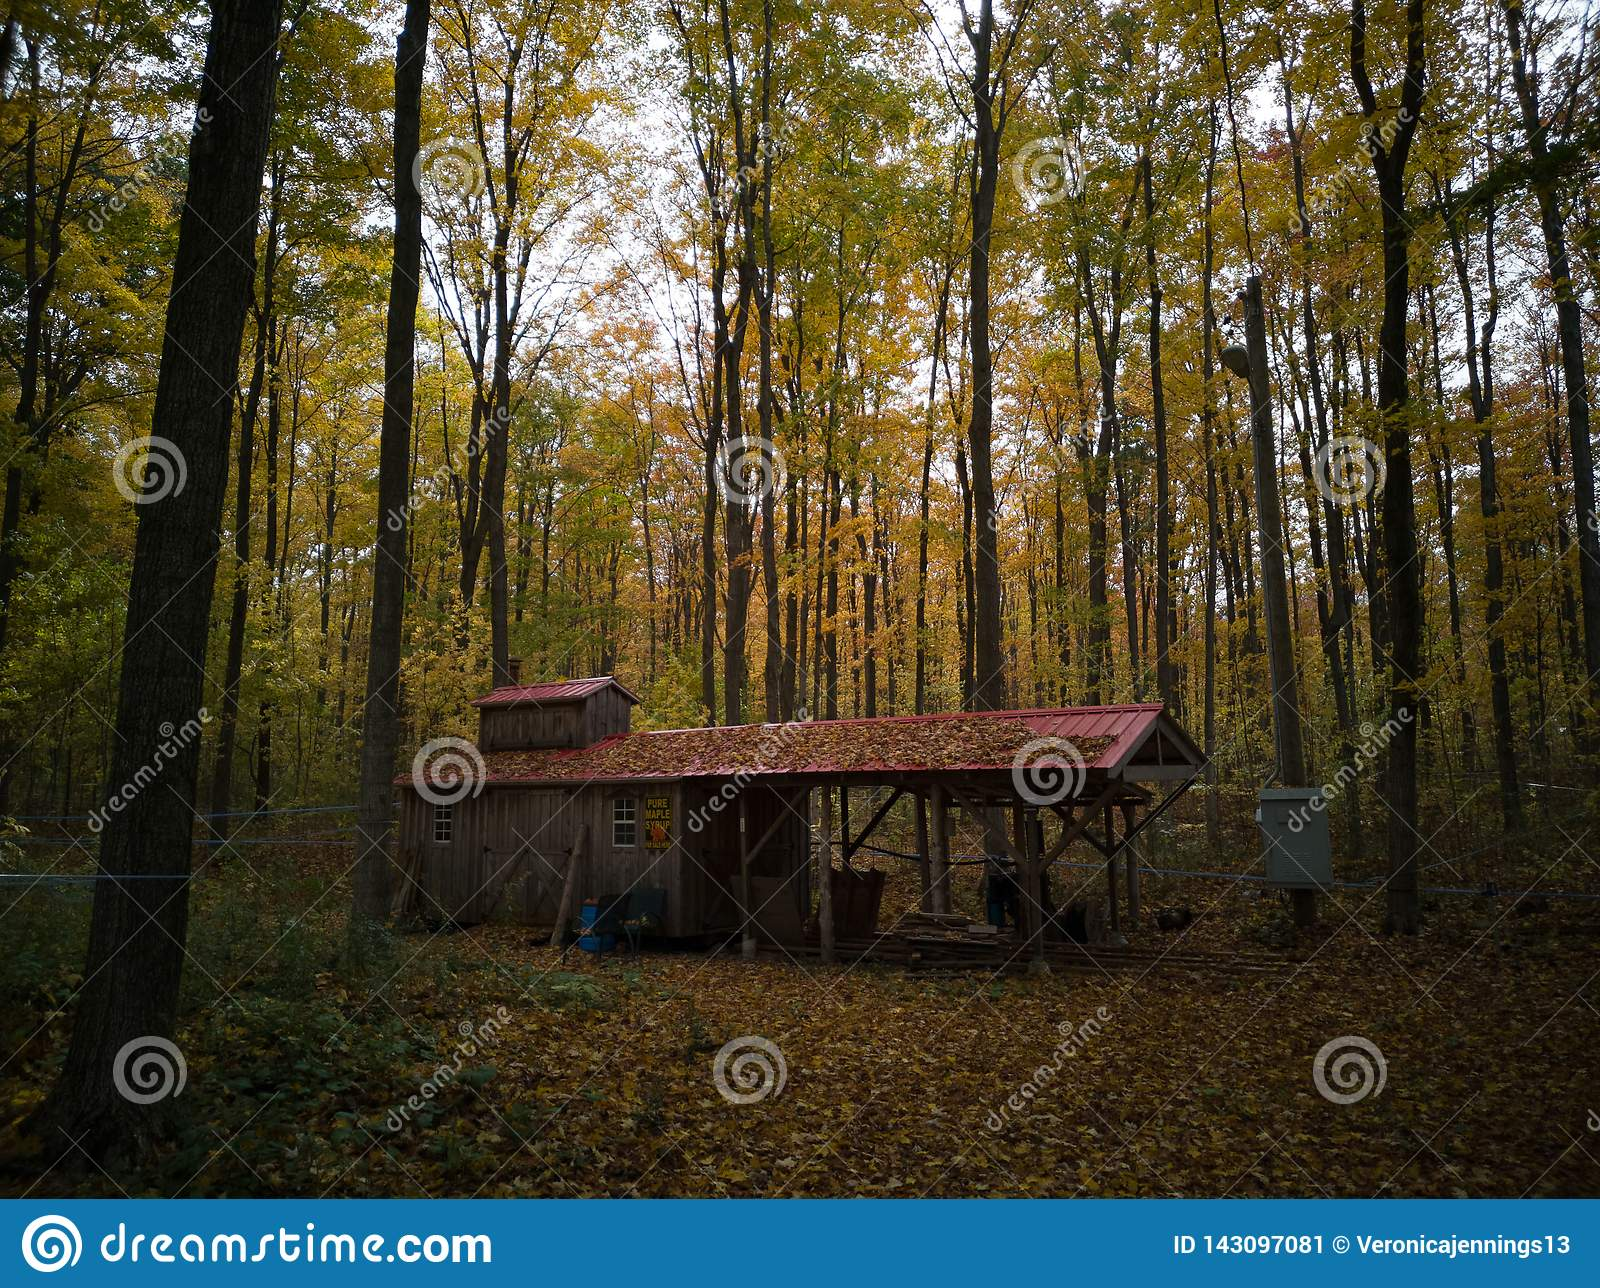 A shack in the middle of the forest